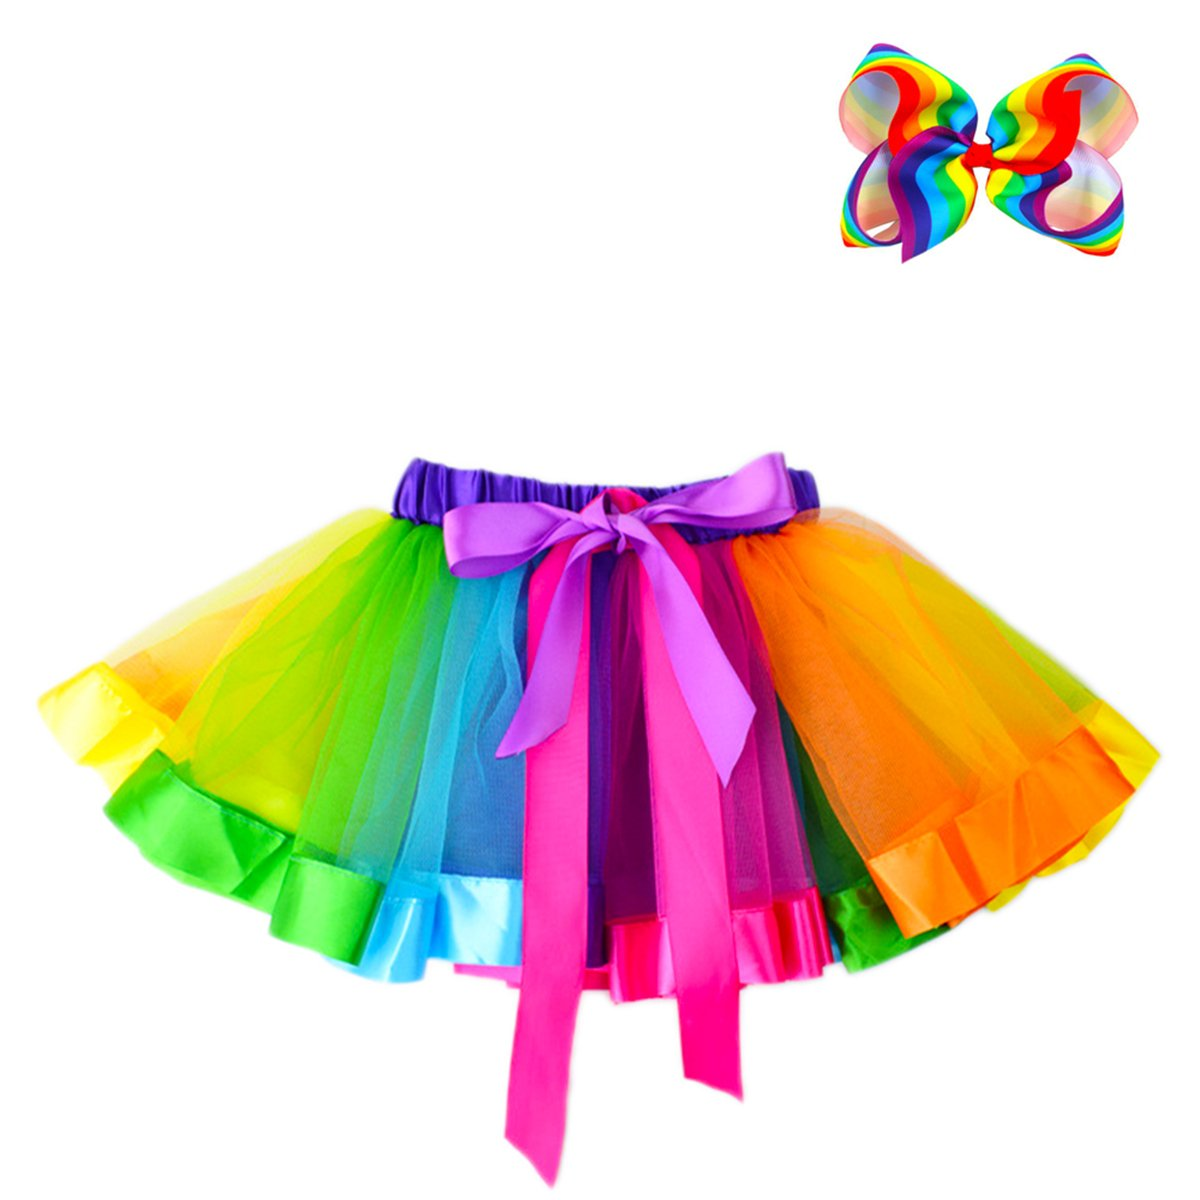 JiaDuo Girls Layered Rainbow Tutu Skirt Bow Dance Ruffle DZ-TU